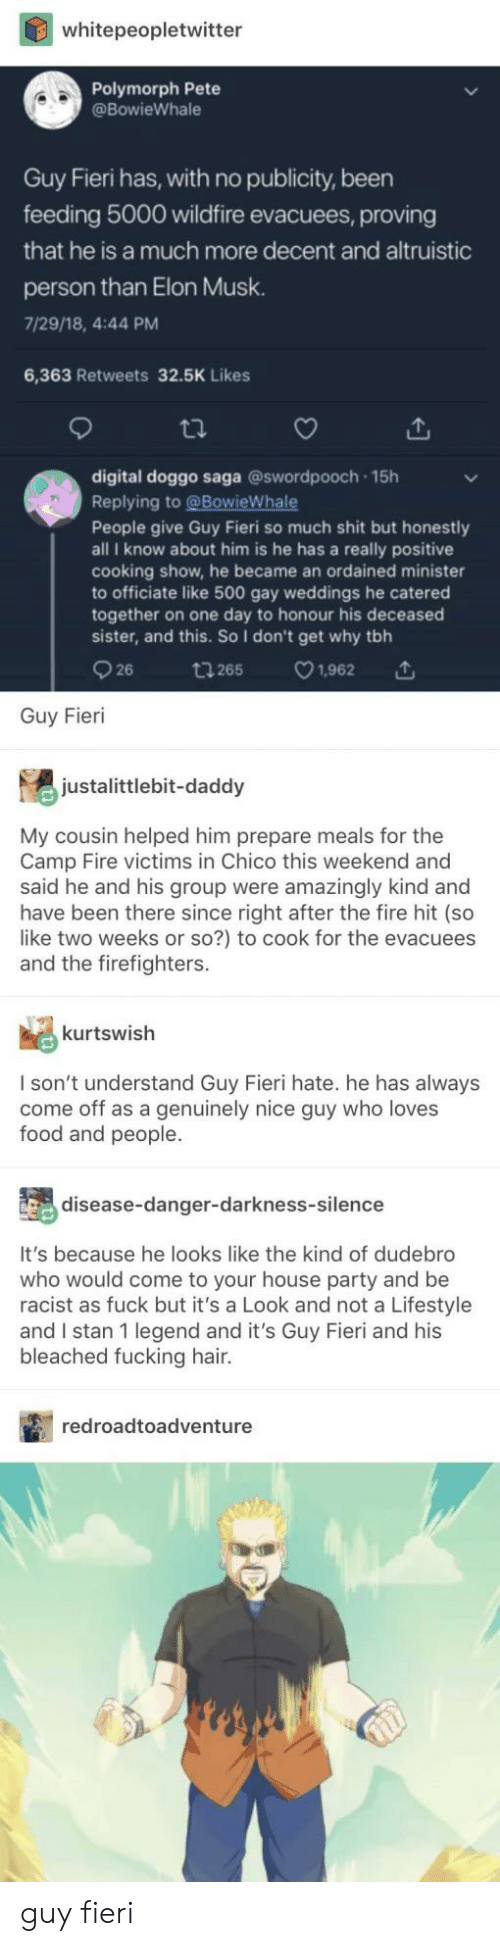 Fire, Food, and Fucking: whitepeopletwitter  Polymorph Pete  @BowieWhale  Guy Fieri has, with no publicity, been  feeding 5000 wildfire evacuees, proving  that he is a much more decent and altruistic  person than Elon Musk.  7/29/18, 4:44 PM  6,363 Retweets 32.5K Likes  tl.  digital doggo saga @swordpooch 15h  Replying to @BowieWhale  People give Guy Fieri so much shit but honestly  all I know about him is he has a really positive  cooking show, he became an ordained minister  to officiate like 500 gay weddings he catered  together on one day to honour his deceased  sister, and this. So I don't get why tbh  26 t265 1,962  Guy Fieri  justalittlebit-daddy  My cousin helped him prepare meals for the  Camp Fire victims in Chico this weekend and  said he and his group were amazingly kind and  have been there since right after the fire hit (so  like two weeks or so?) to cook for the evacuees  and the firefighters.  kurtswish  I son't understand Guy Fieri hate. he has always  come off as a genuinely nice guy who loves  food and people.  disease-danger-darkness-silence  It's because he looks like the kind of dudebro  who would come to your house party and be  racist as fuck but it's a Look and not a Lifestyle  and I stan 1 legend and it's Guy Fieri and his  bleached fucking hair.  redroadtoadventure guy fieri